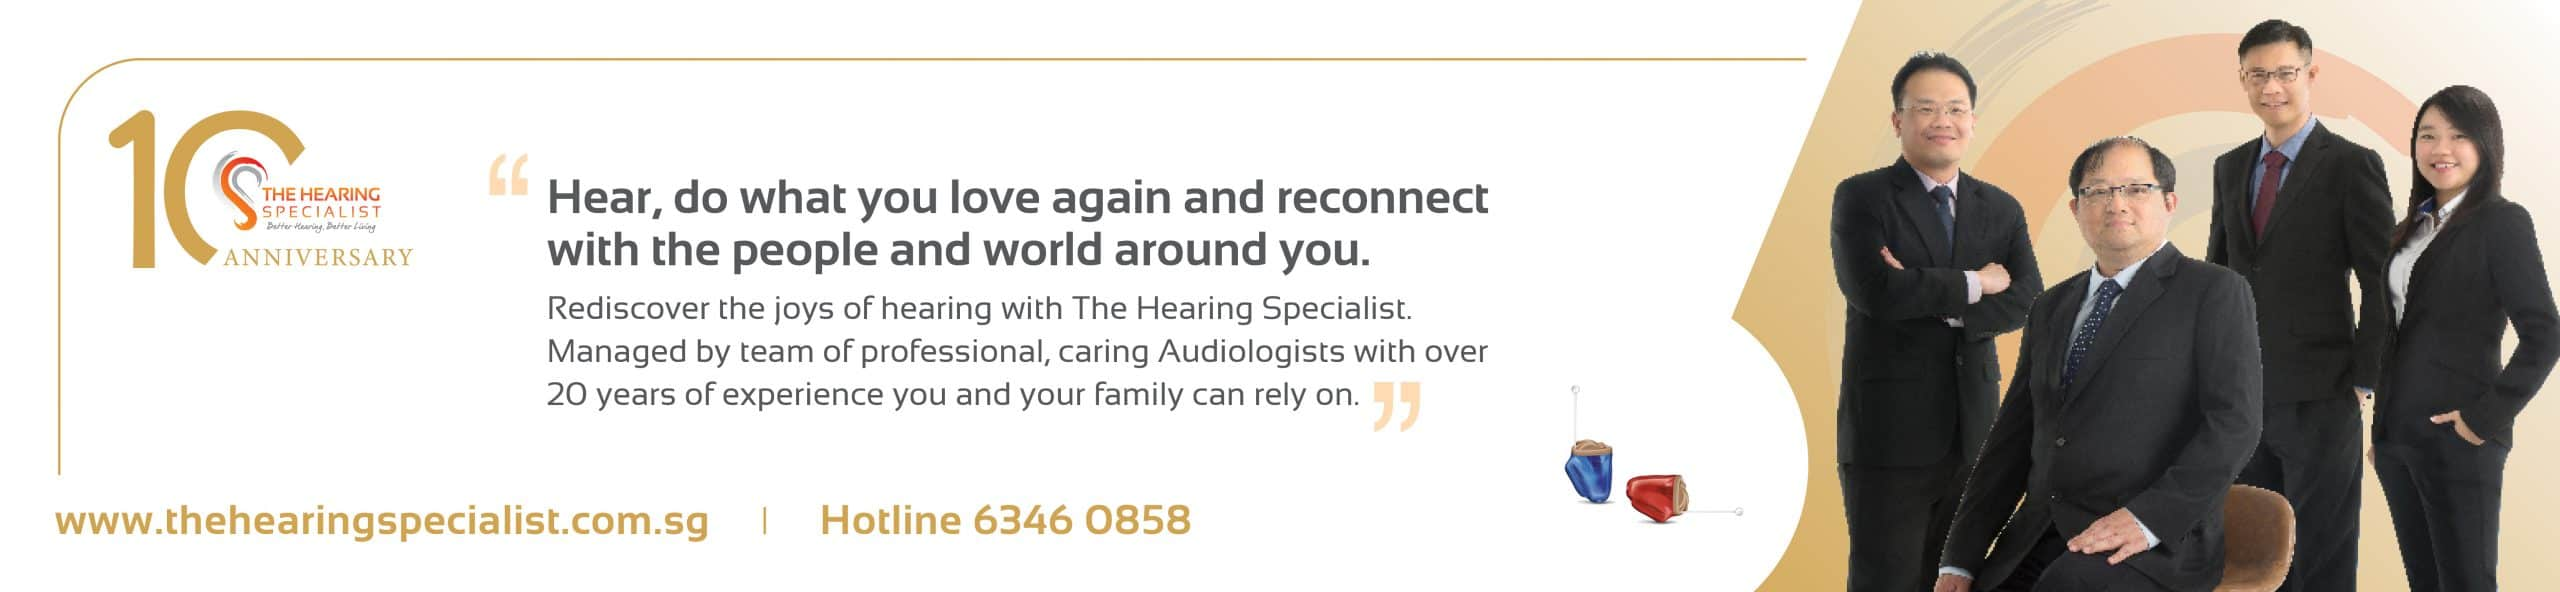 The Hearing Specialist Group